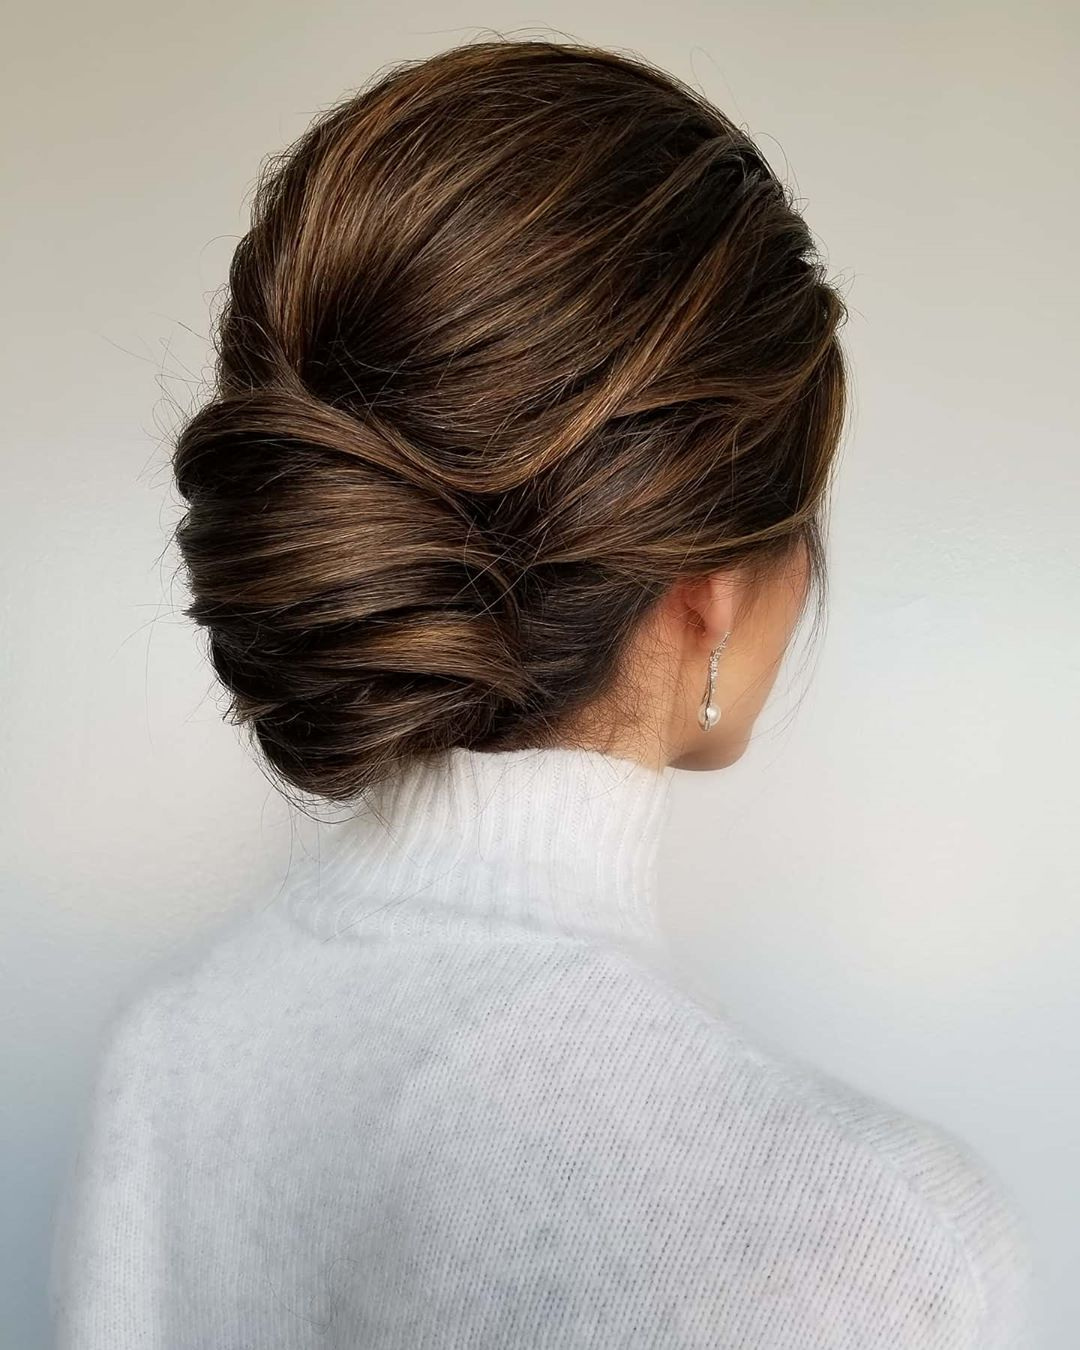 Banana Bun Updo for Fall